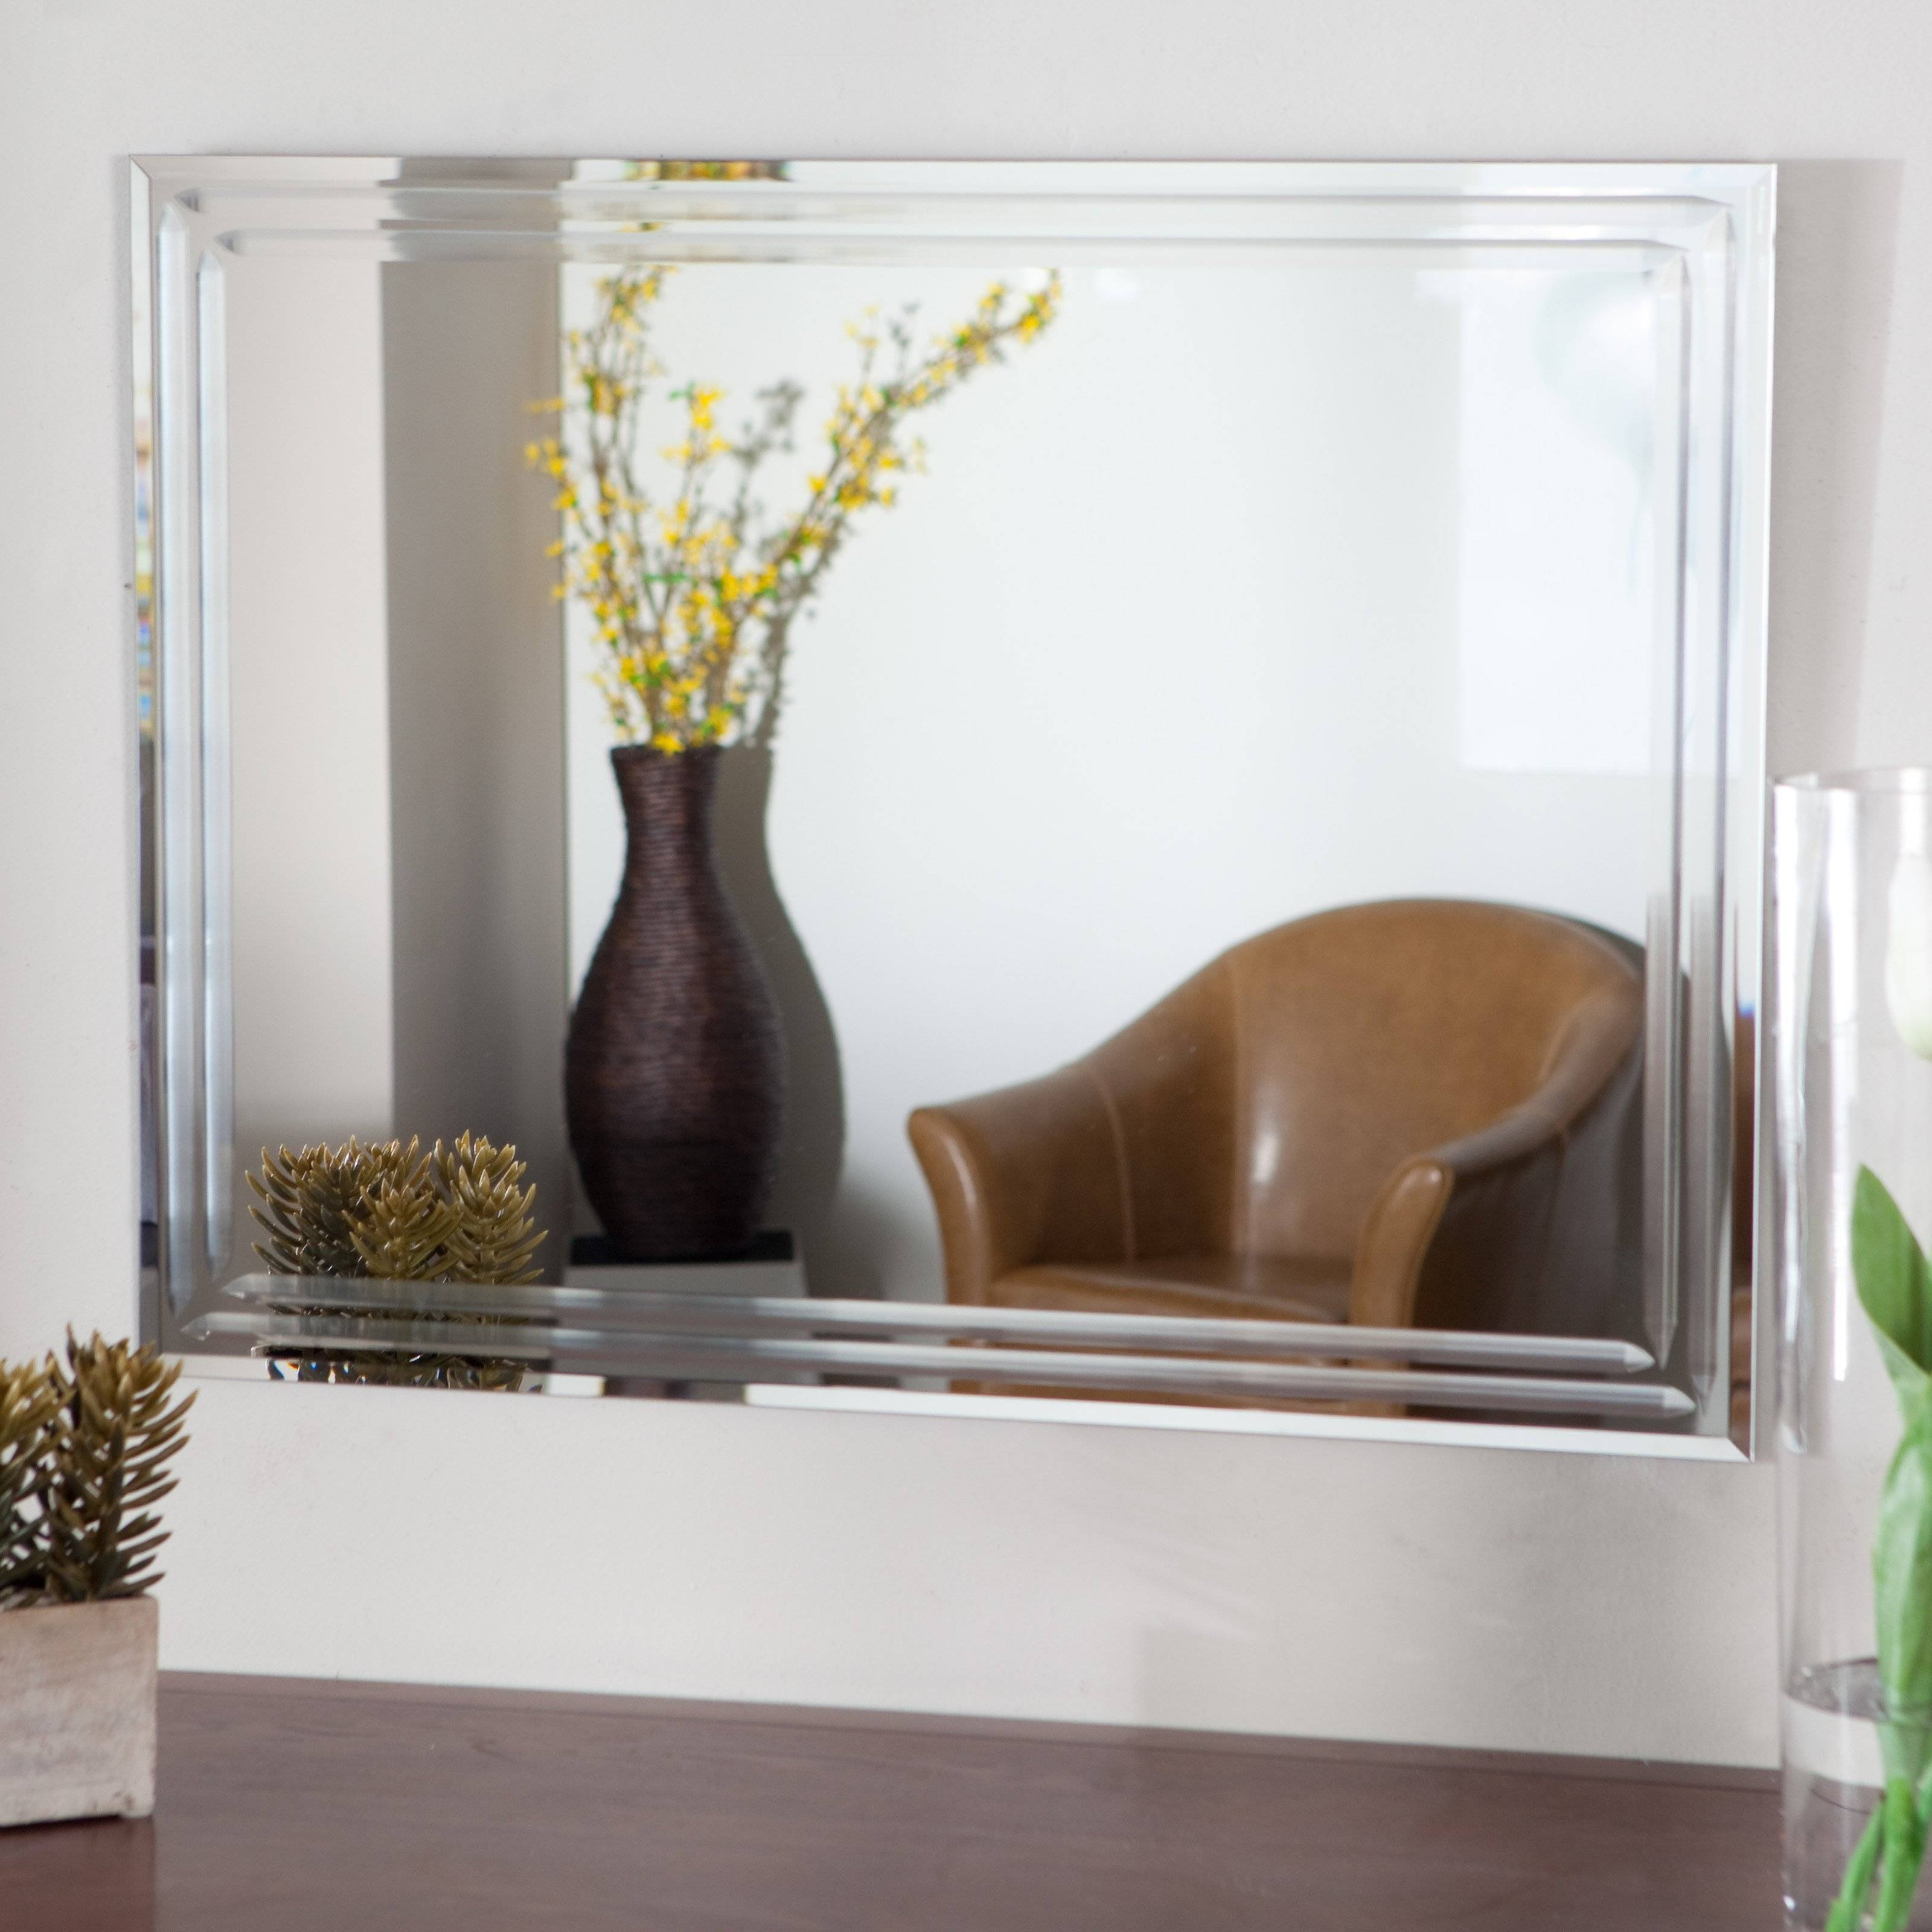 Décor Wonderland Frameless Tri Bevel Wall Mirror - 23.5W X intended for Bevelled Wall Mirrors (Image 12 of 25)